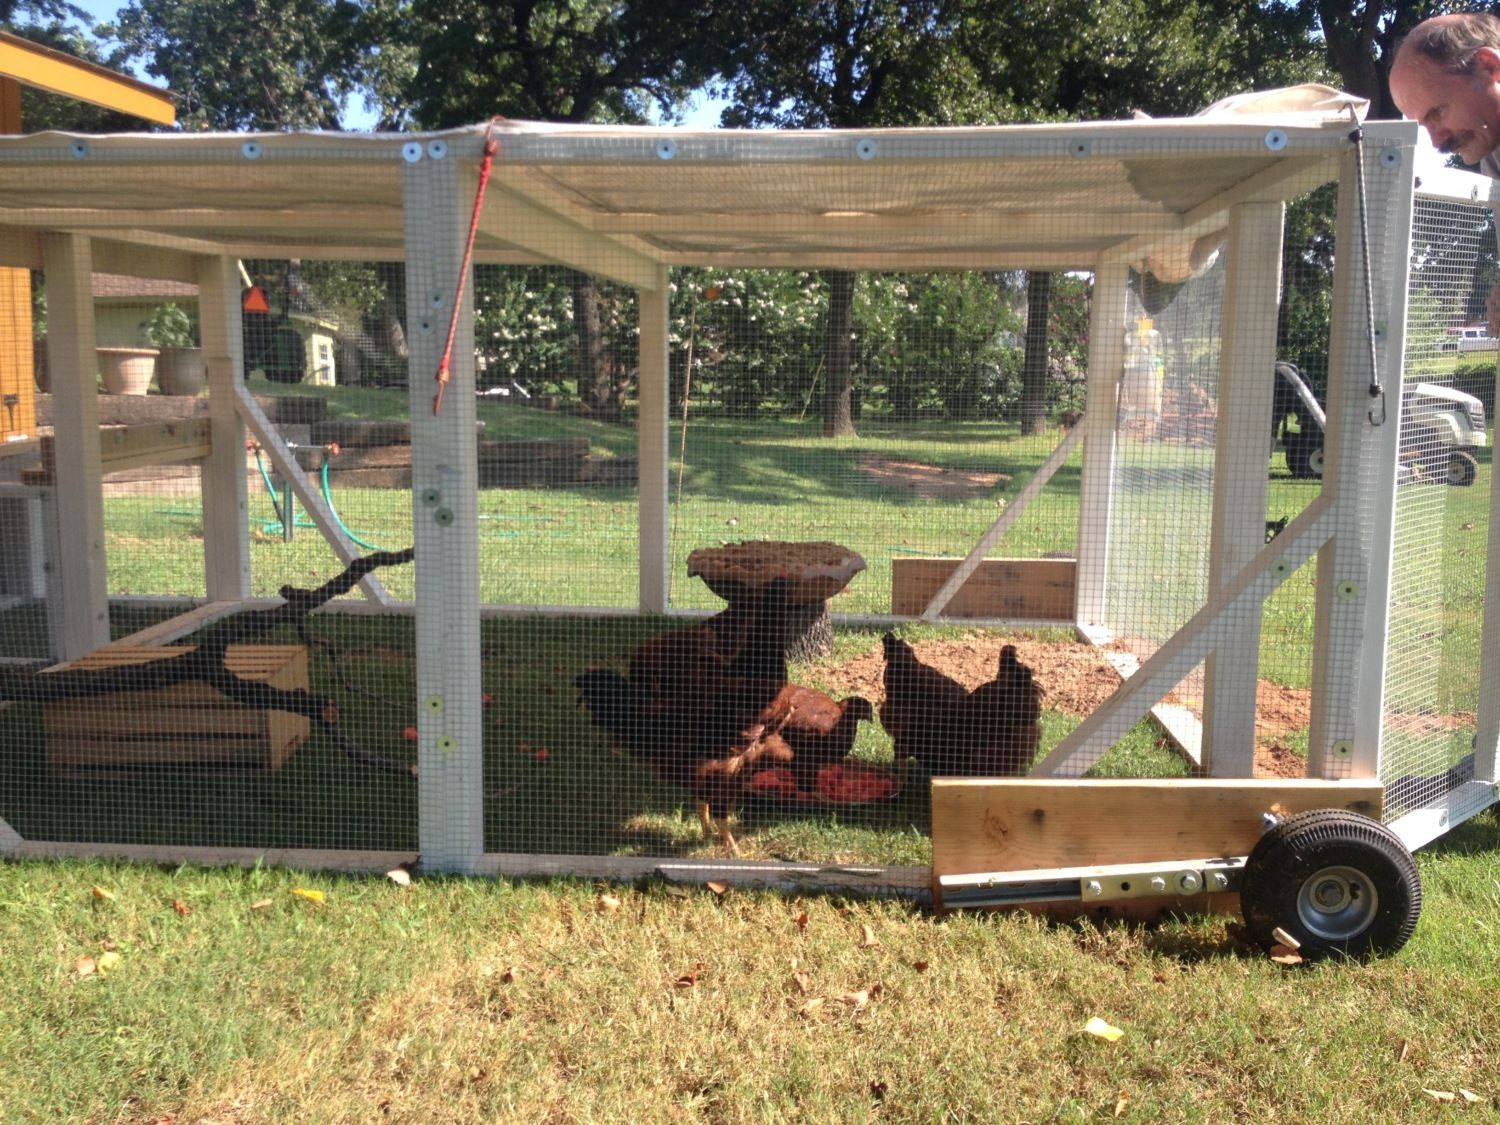 The 4' tall run (the right side) with wheels. Just have a sheet over the top of coop to keep hot sun off them, and to make it harder for the hawks to see them.